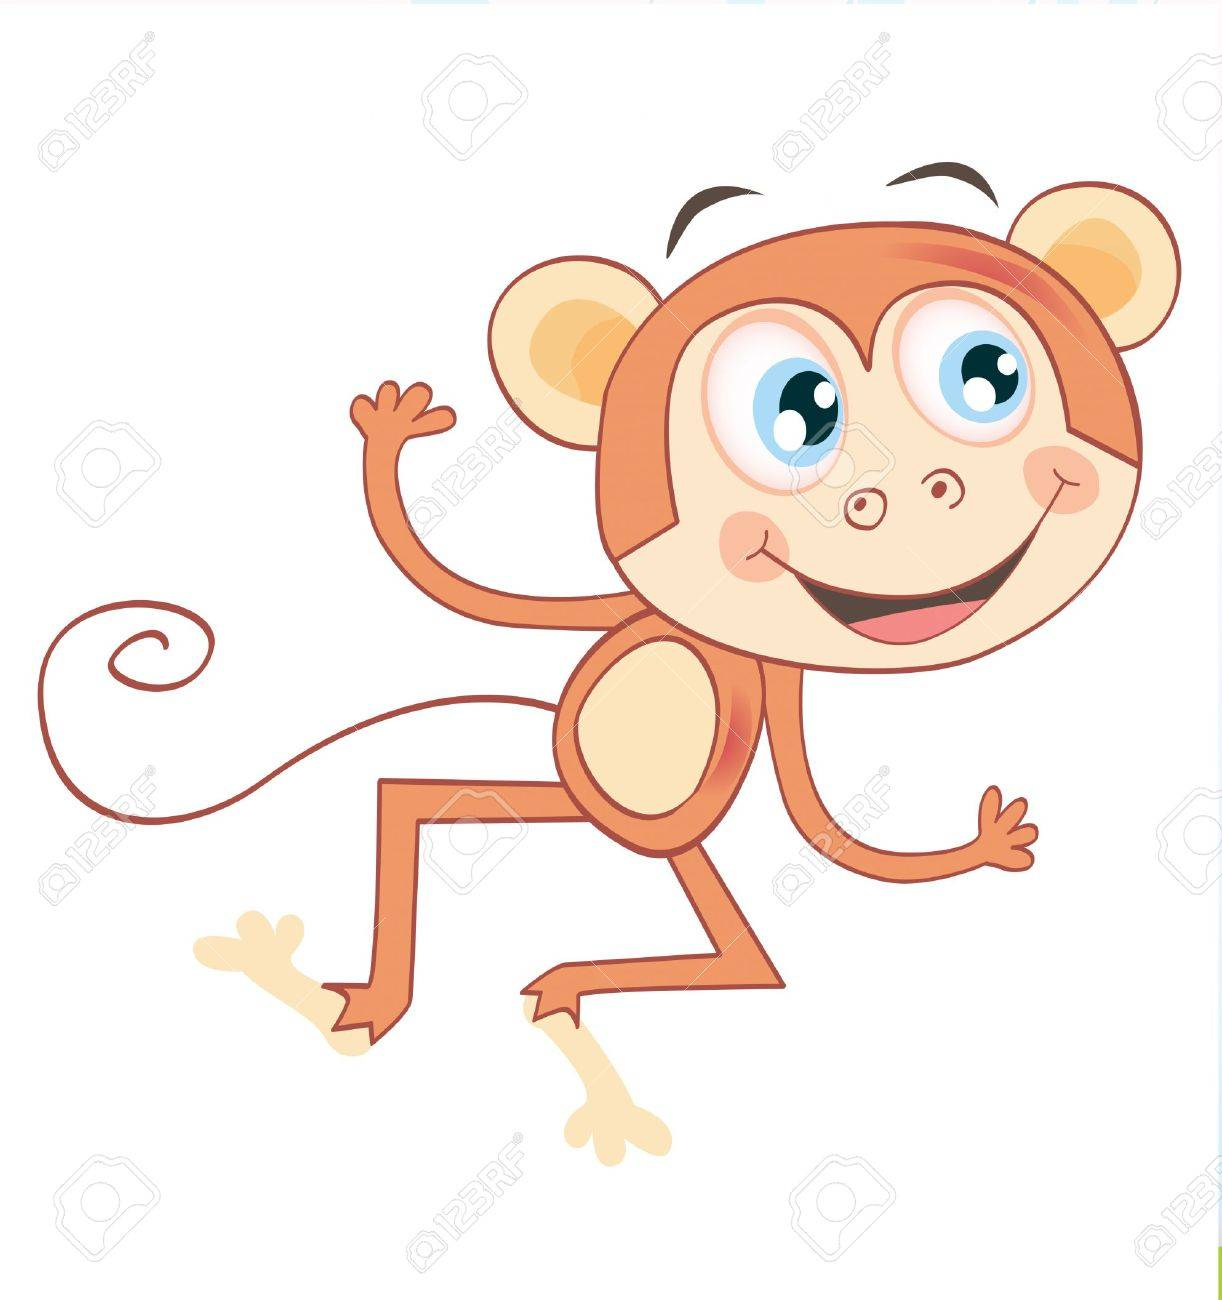 Monkey Isolated On White Background Funny Jumping Animal Vector